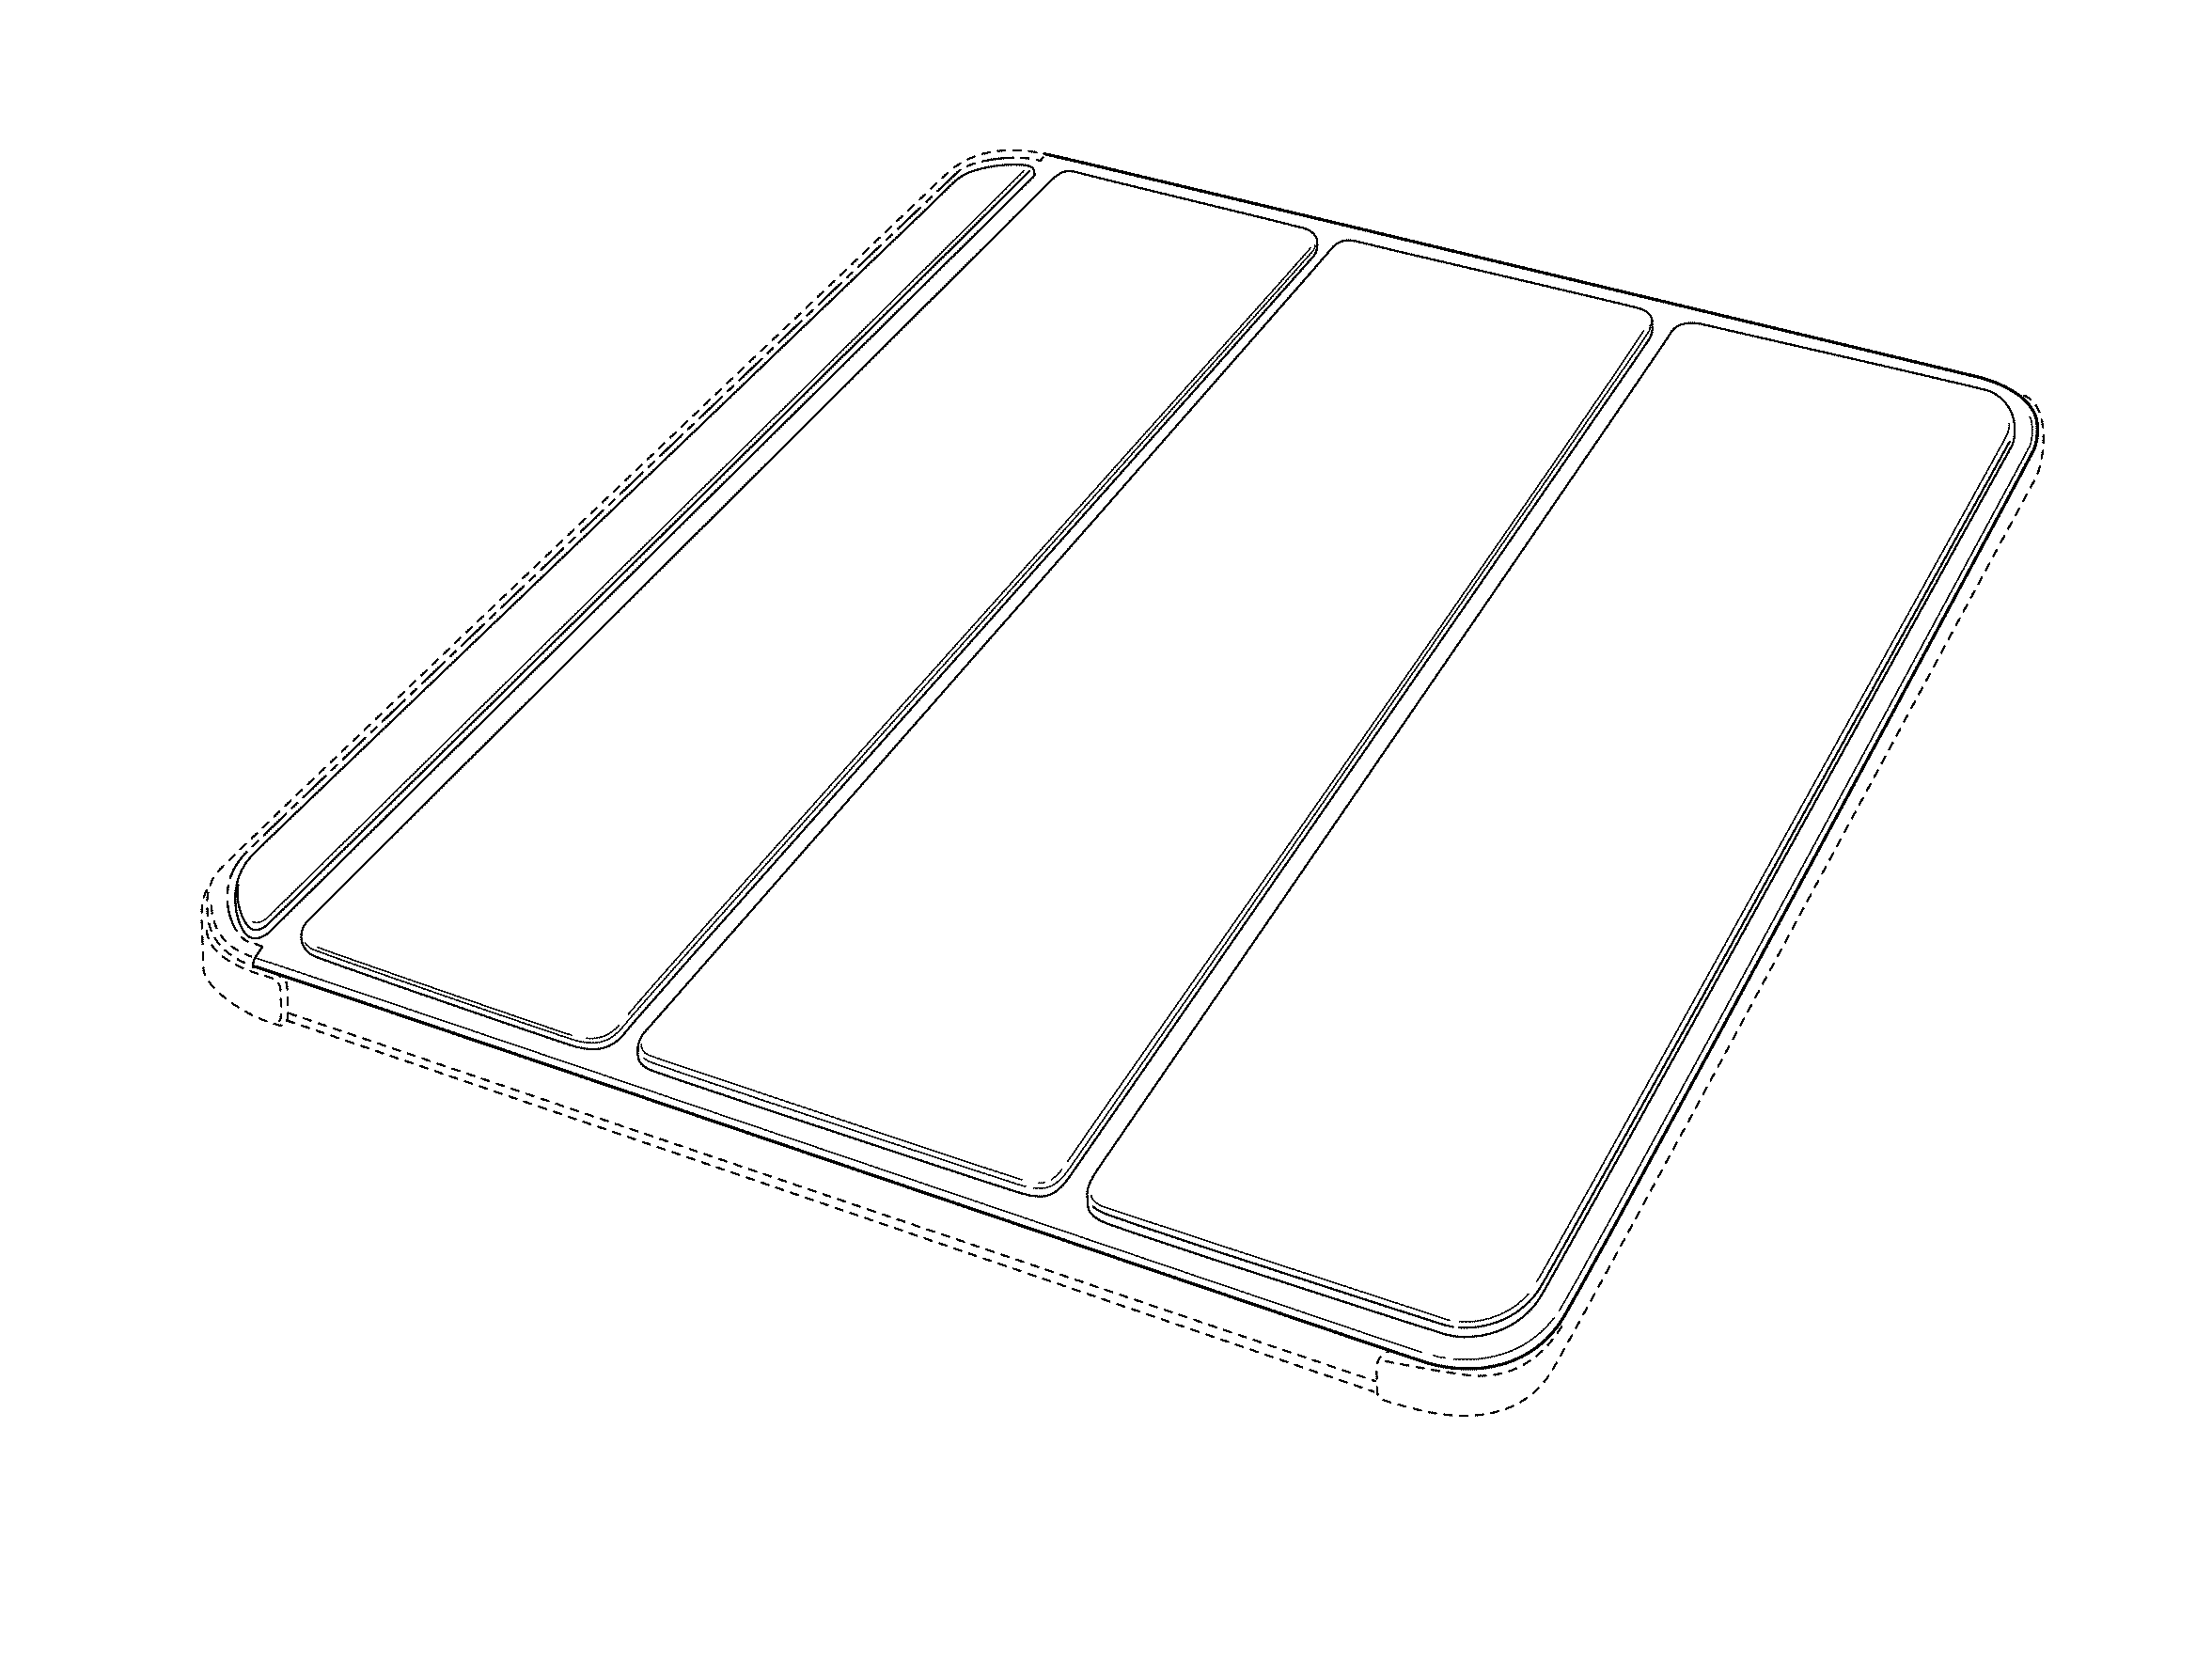 Innovative Incase Designs Corp design patent for cover for